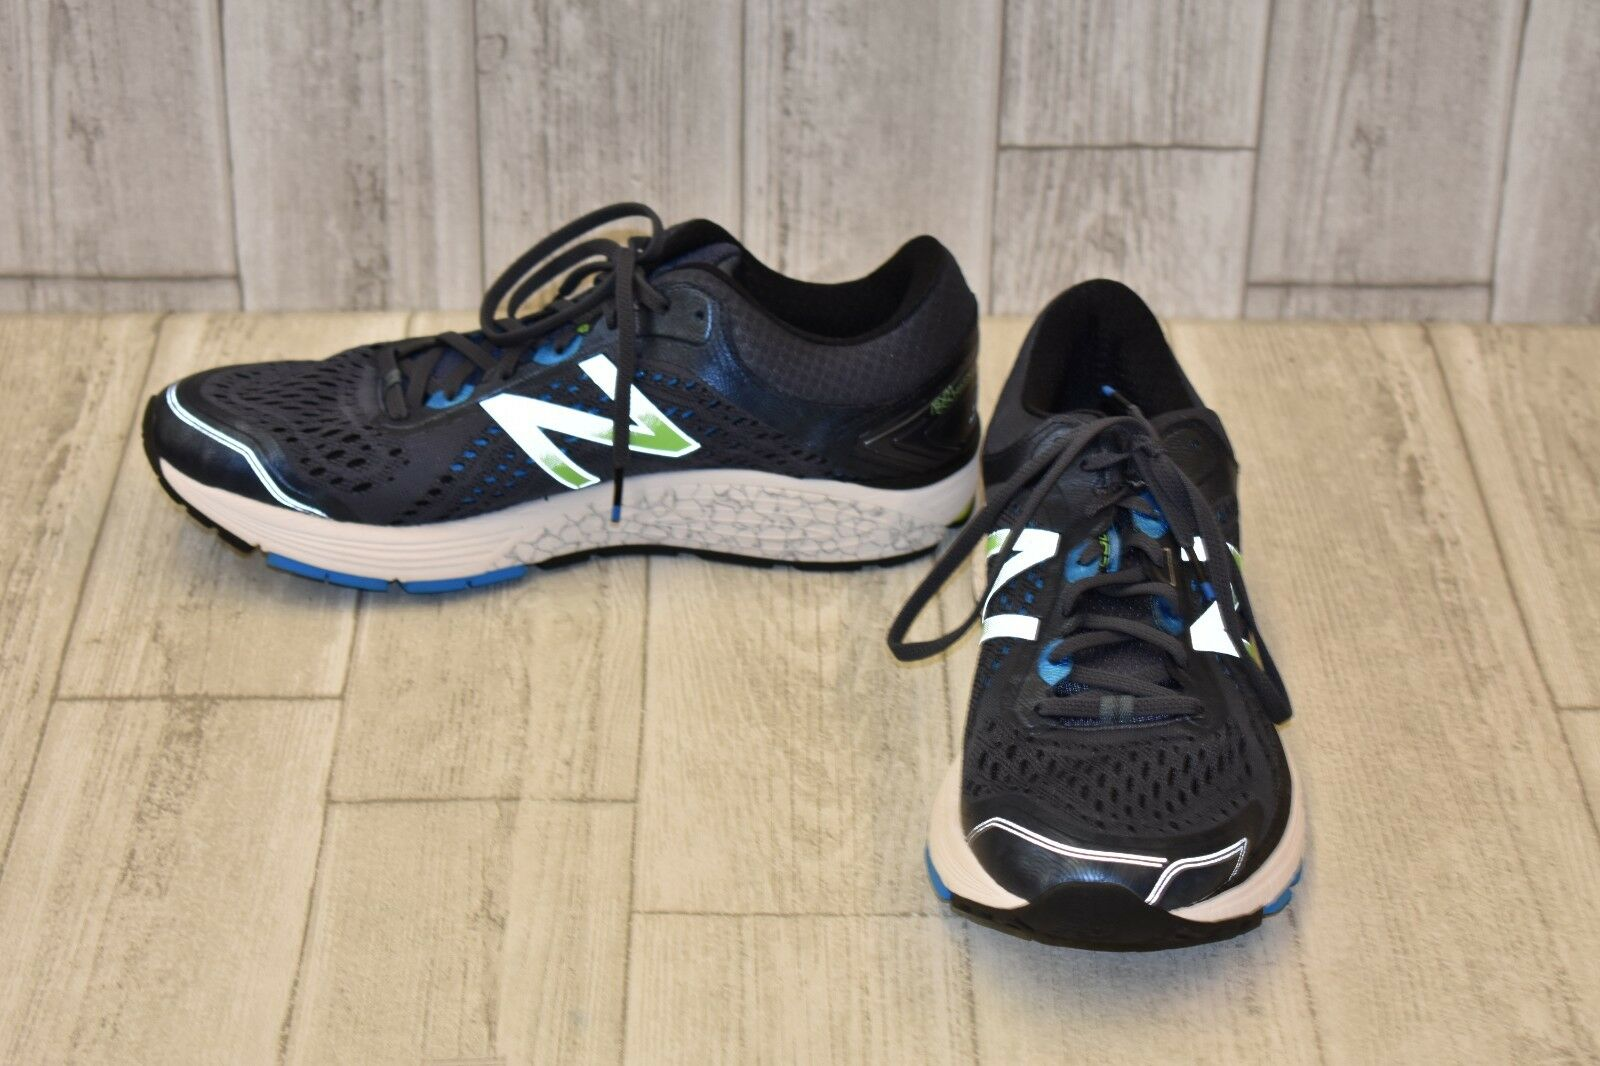 New Balance M1260BB7 Athletic shoes - Men's Size 11 D - Navy Green